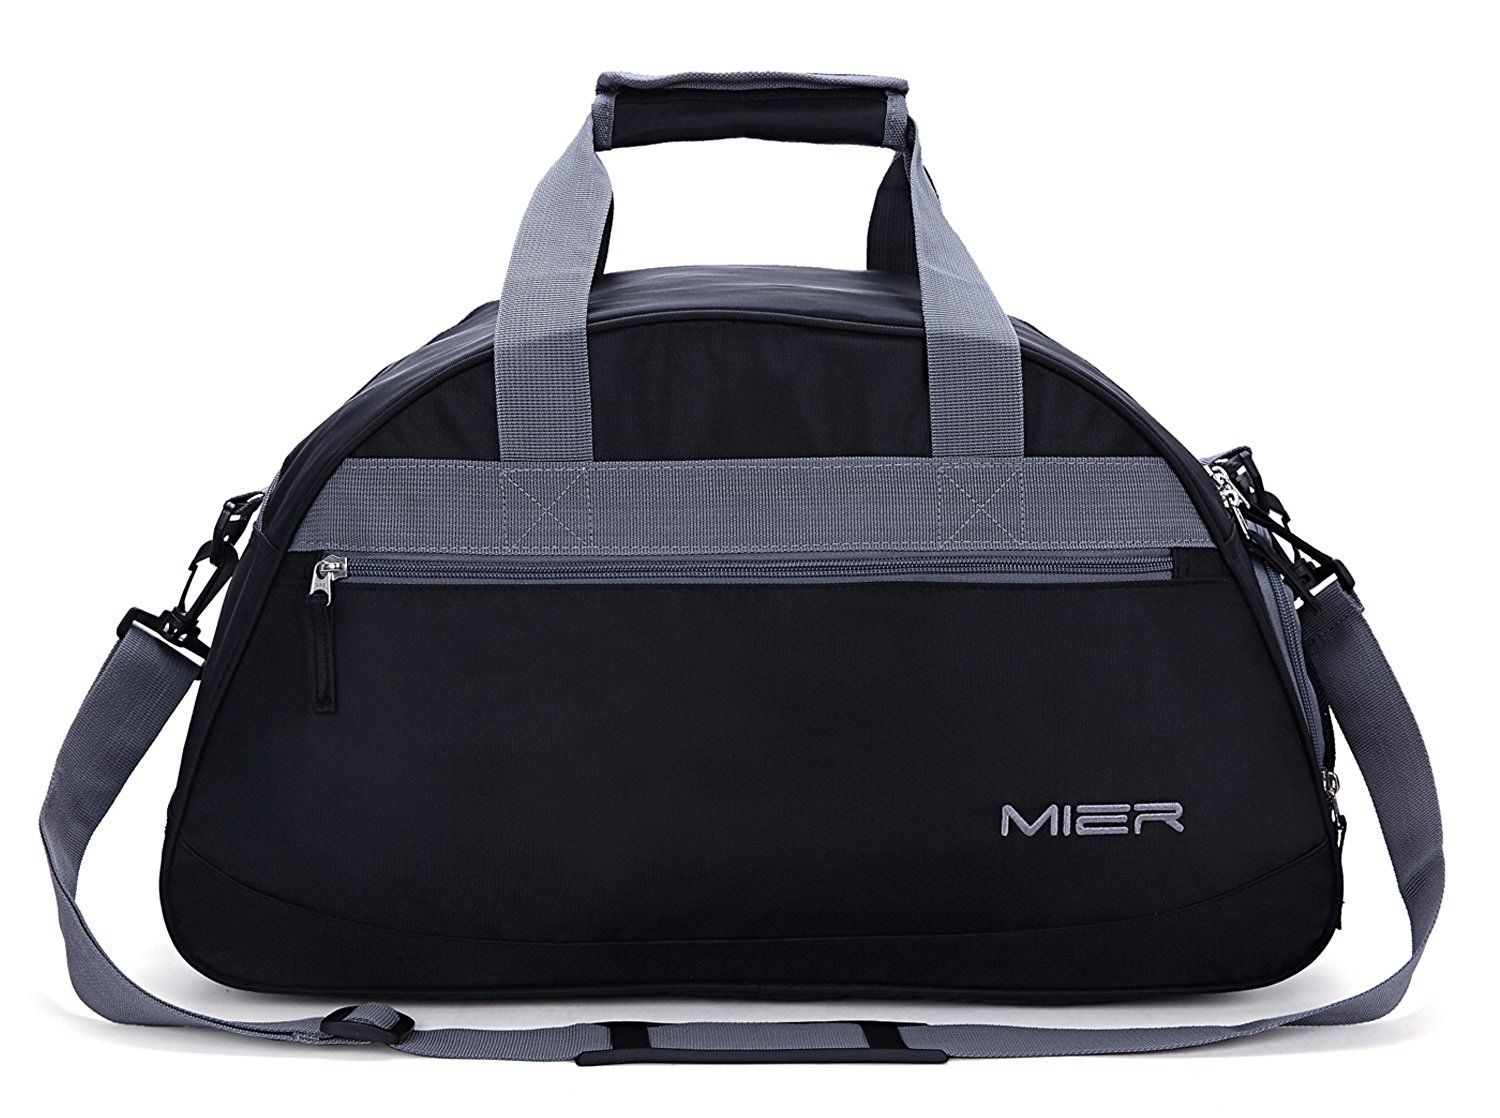 Carry On Size Black 20inches MIER Gym Duffel Bag for Men and Women with Shoe Compartment